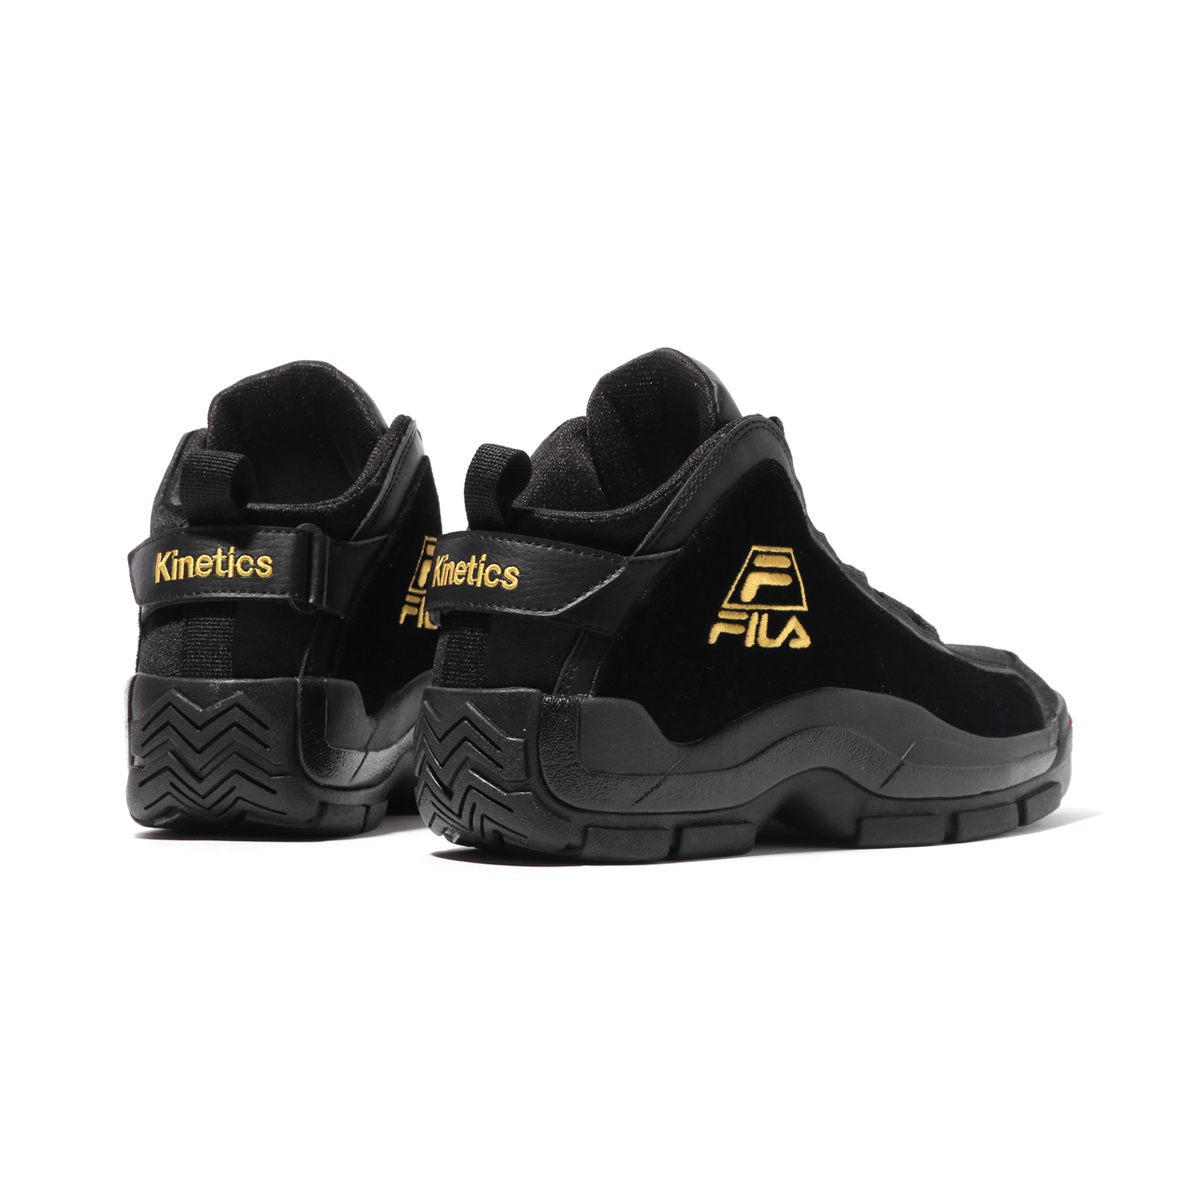 buy online 6168d 0c7d4 ... Velour Pack  Kinetics x FILA 96 GL ...